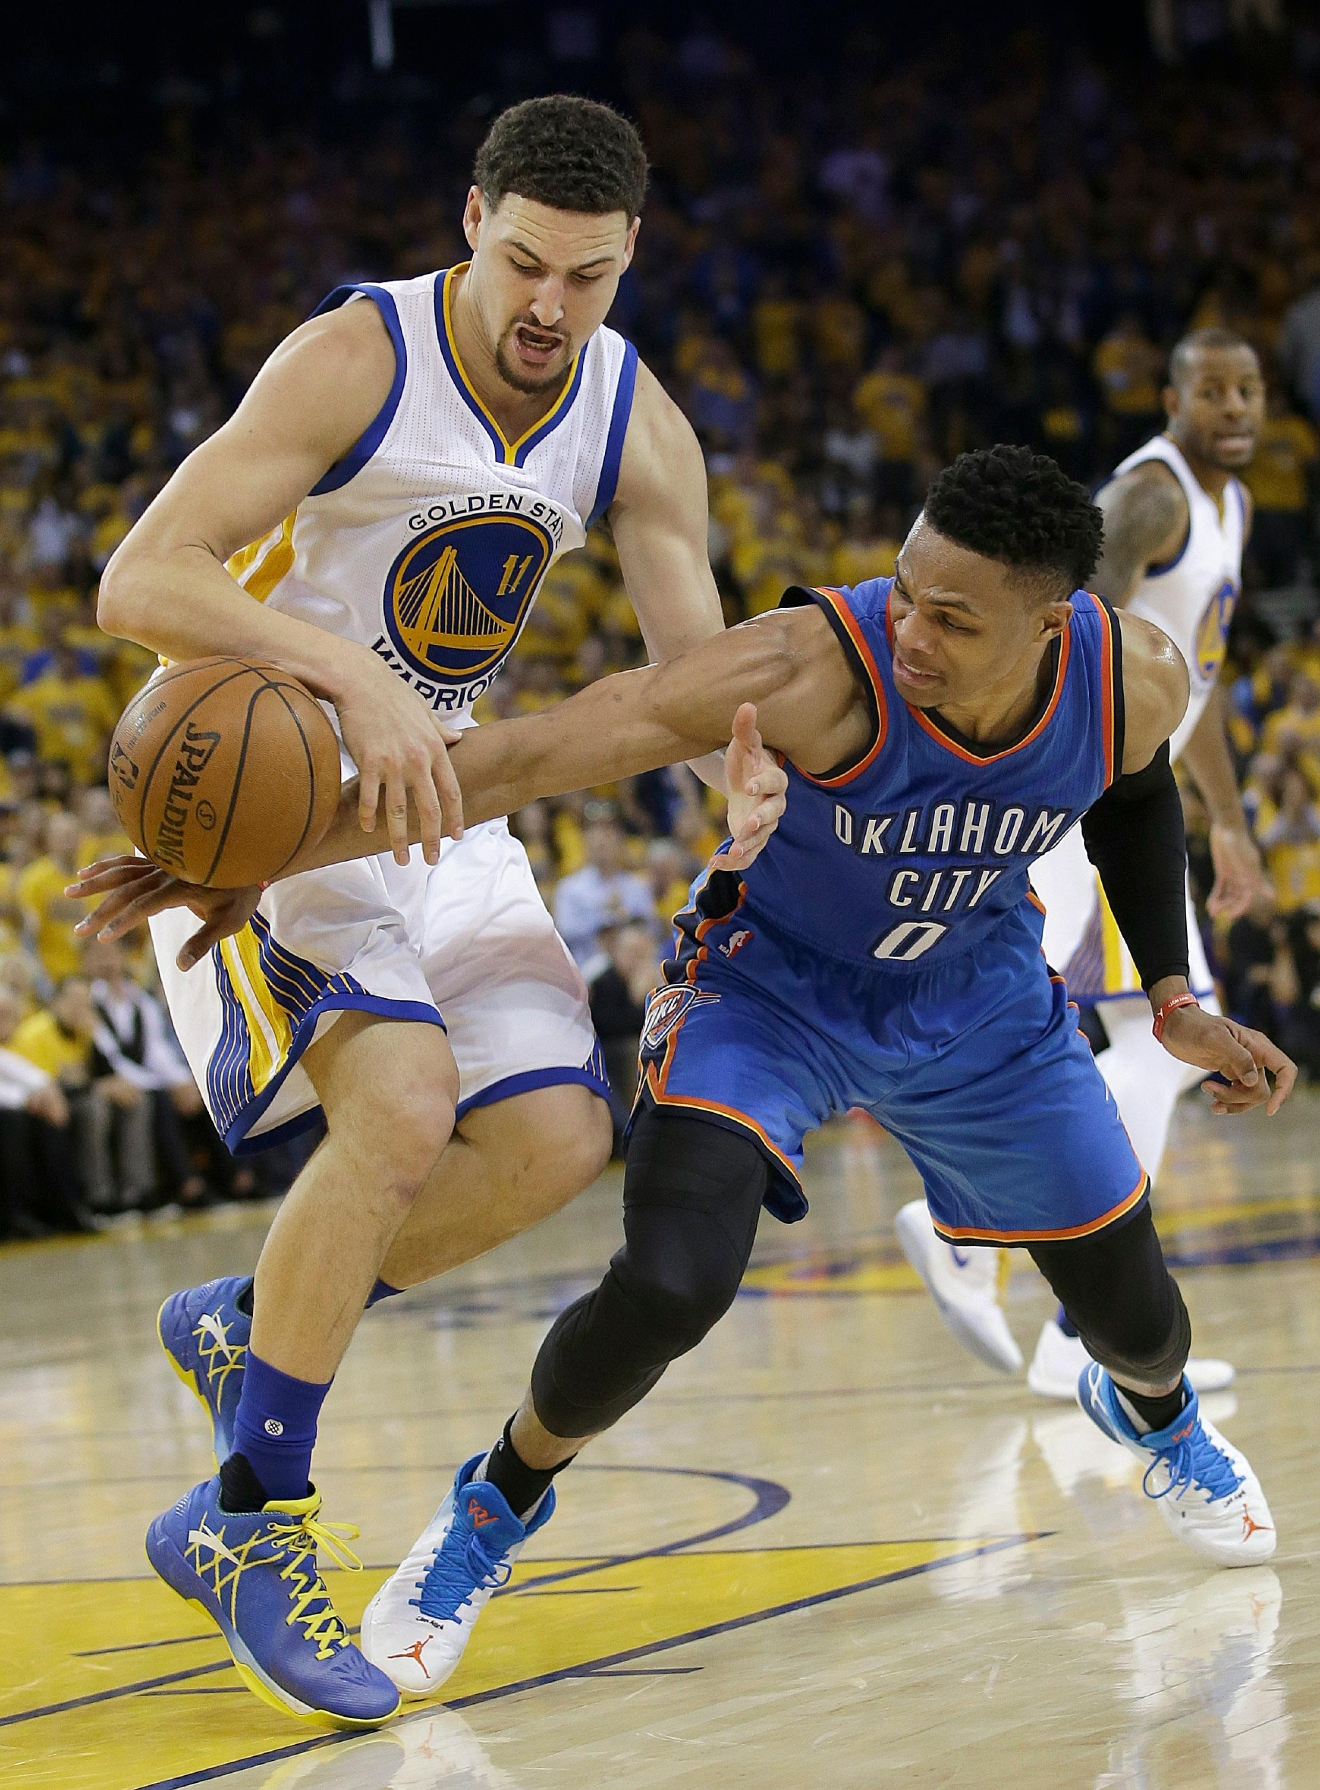 Oklahoma City Thunder guard Russell Westbrook (0) reaches for the ball under Golden State Warriors guard Klay Thompson (11) during the first half of Game 5 of the NBA basketball Western Conference finals in Oakland, Calif., Thursday, May 26, 2016. (AP Photo/Marcio Jose Sanchez)